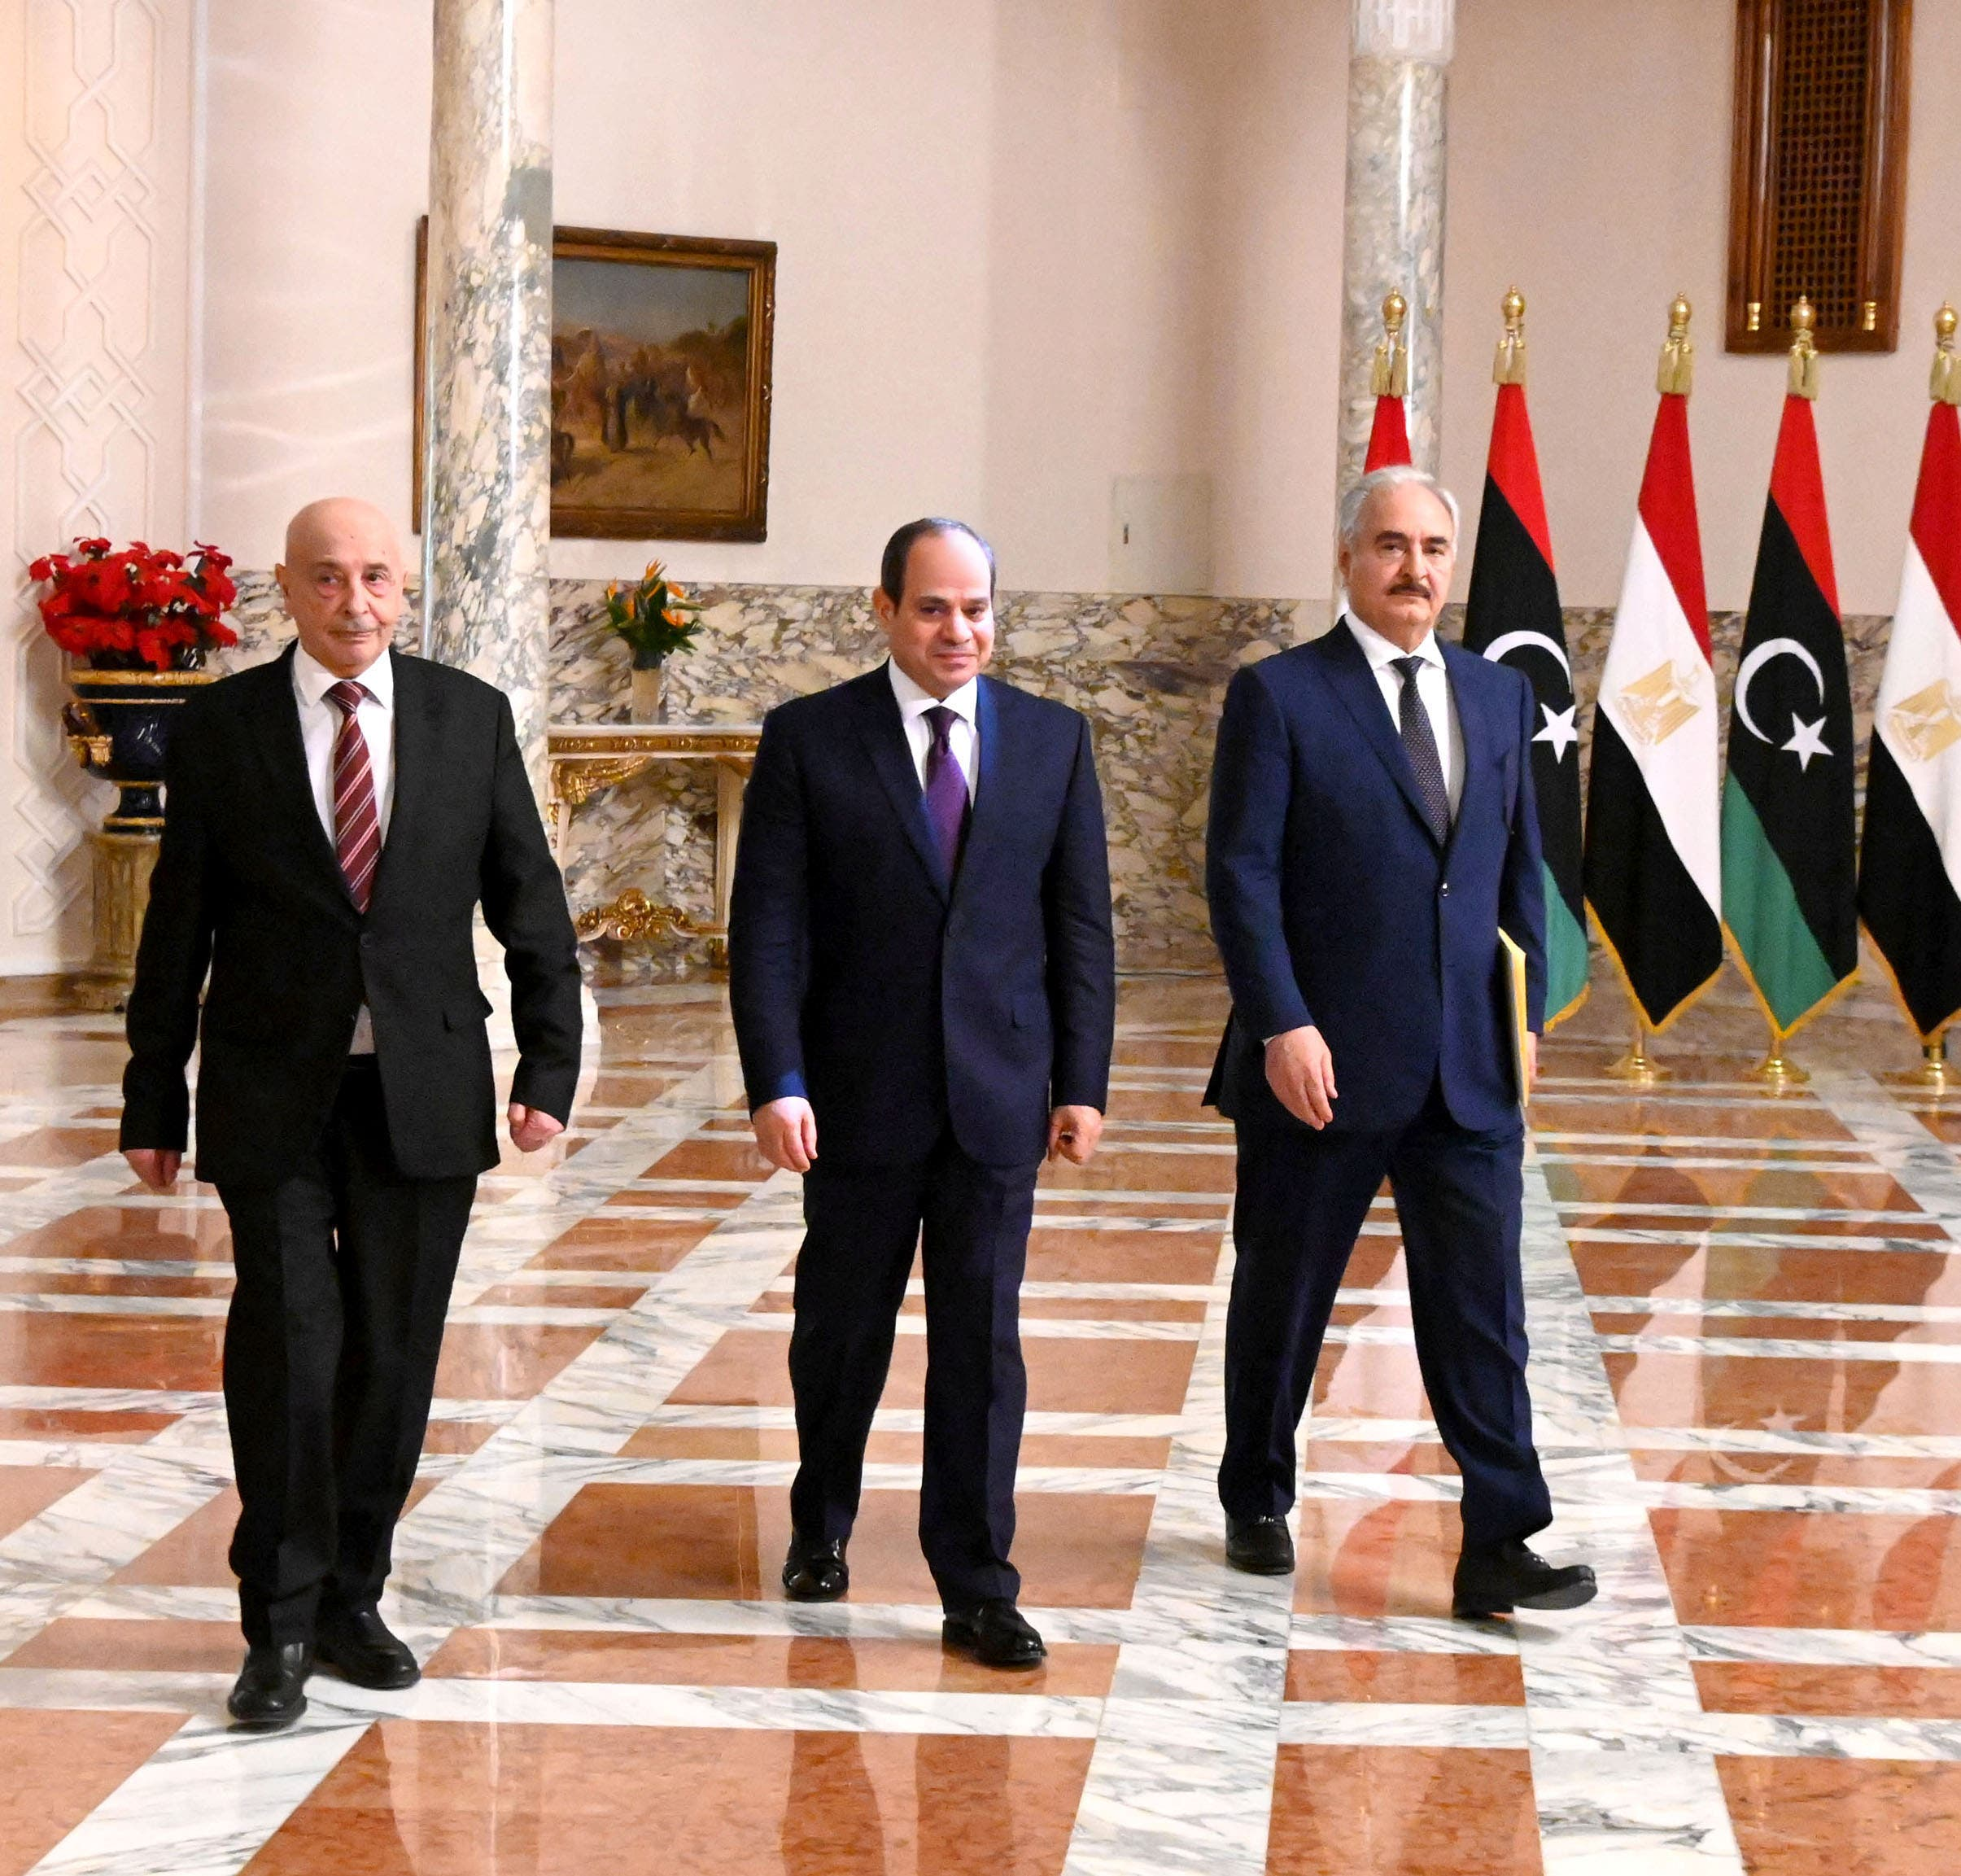 Egyptian President Abdel Fattah al-Sisi (C), Libyan commander Khalifa Haftar (R) and the Libyan Parliament speaker Aguila Saleh arriving for a joint press conference in Cairo. (Egyptian Presidency/Handout)